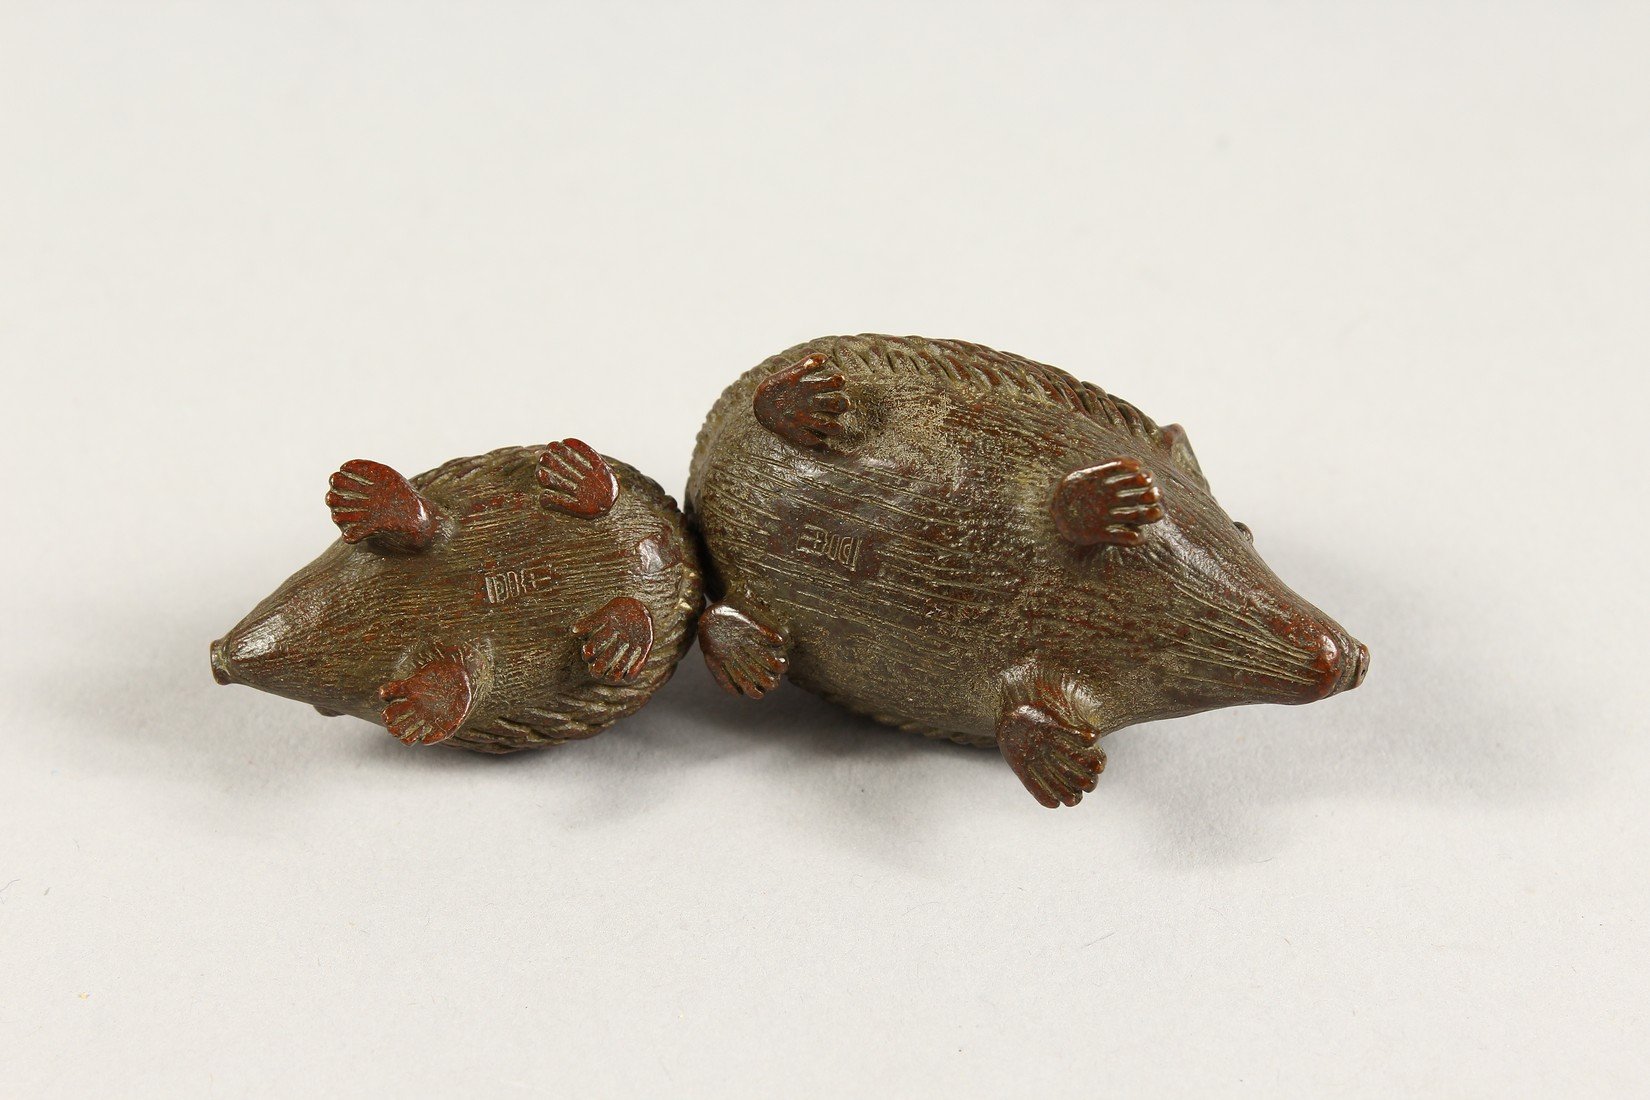 TWO JAPANESE BBRONZE HEDGEHOGS 2ins & 1.5ins long - Image 4 of 4